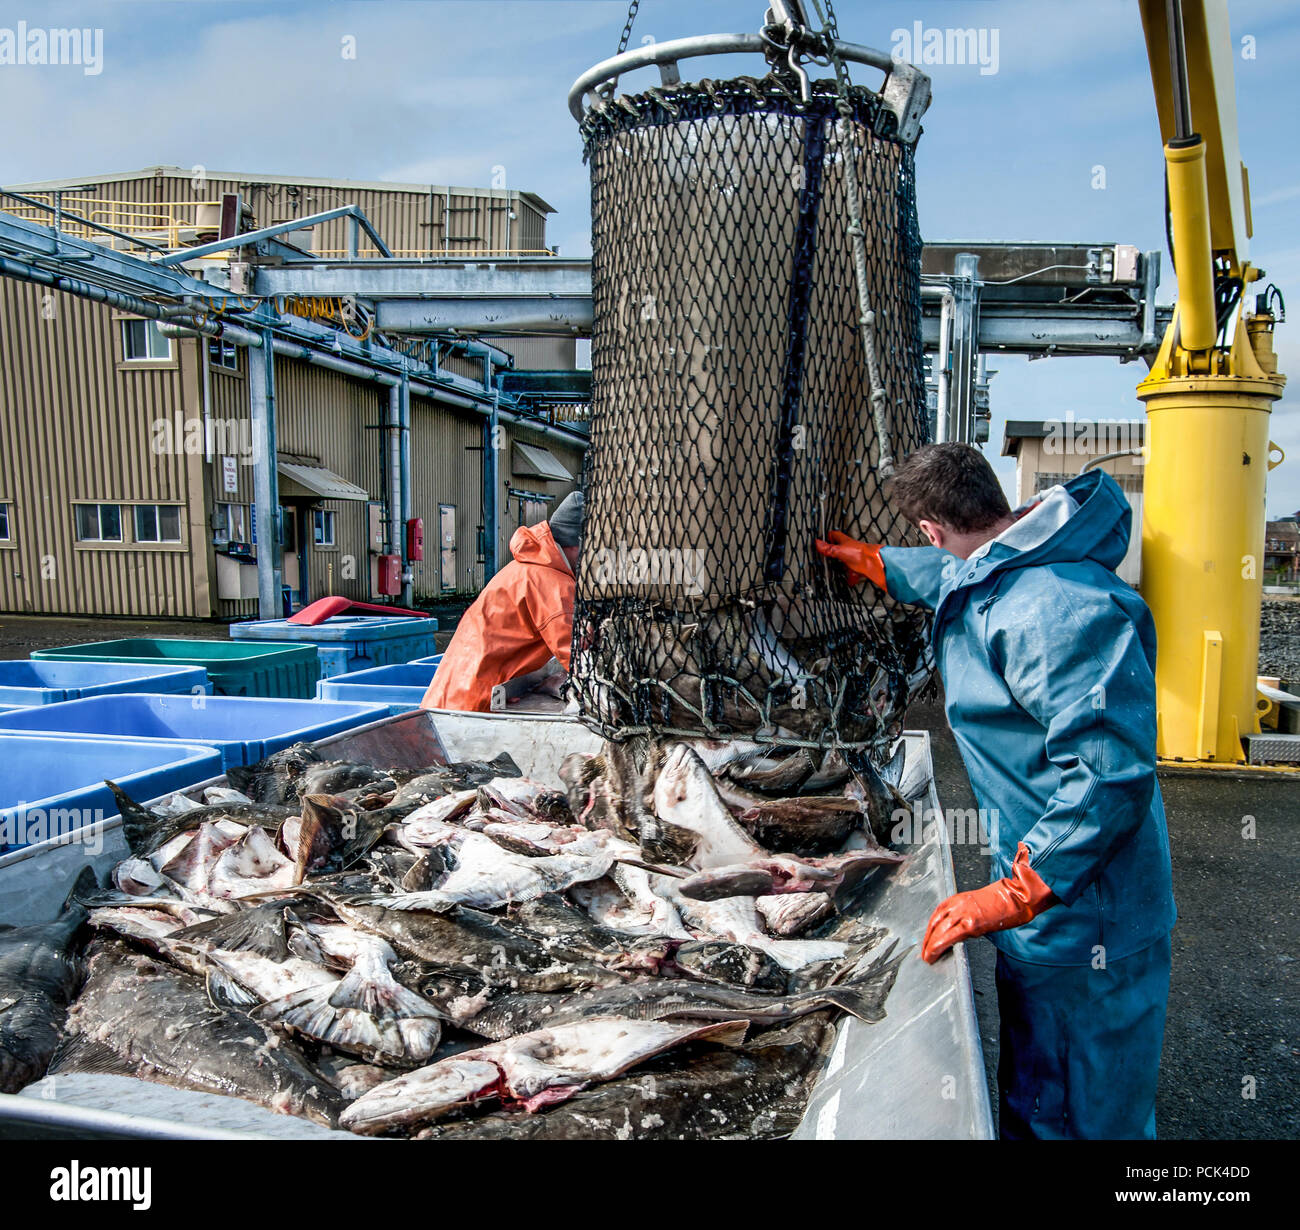 Unloading Fish:  Fresh caught halibut drop from the bottom of a transport basket after being hoisted by crane from a fishing boat at a dock in Alaska. Stock Photo